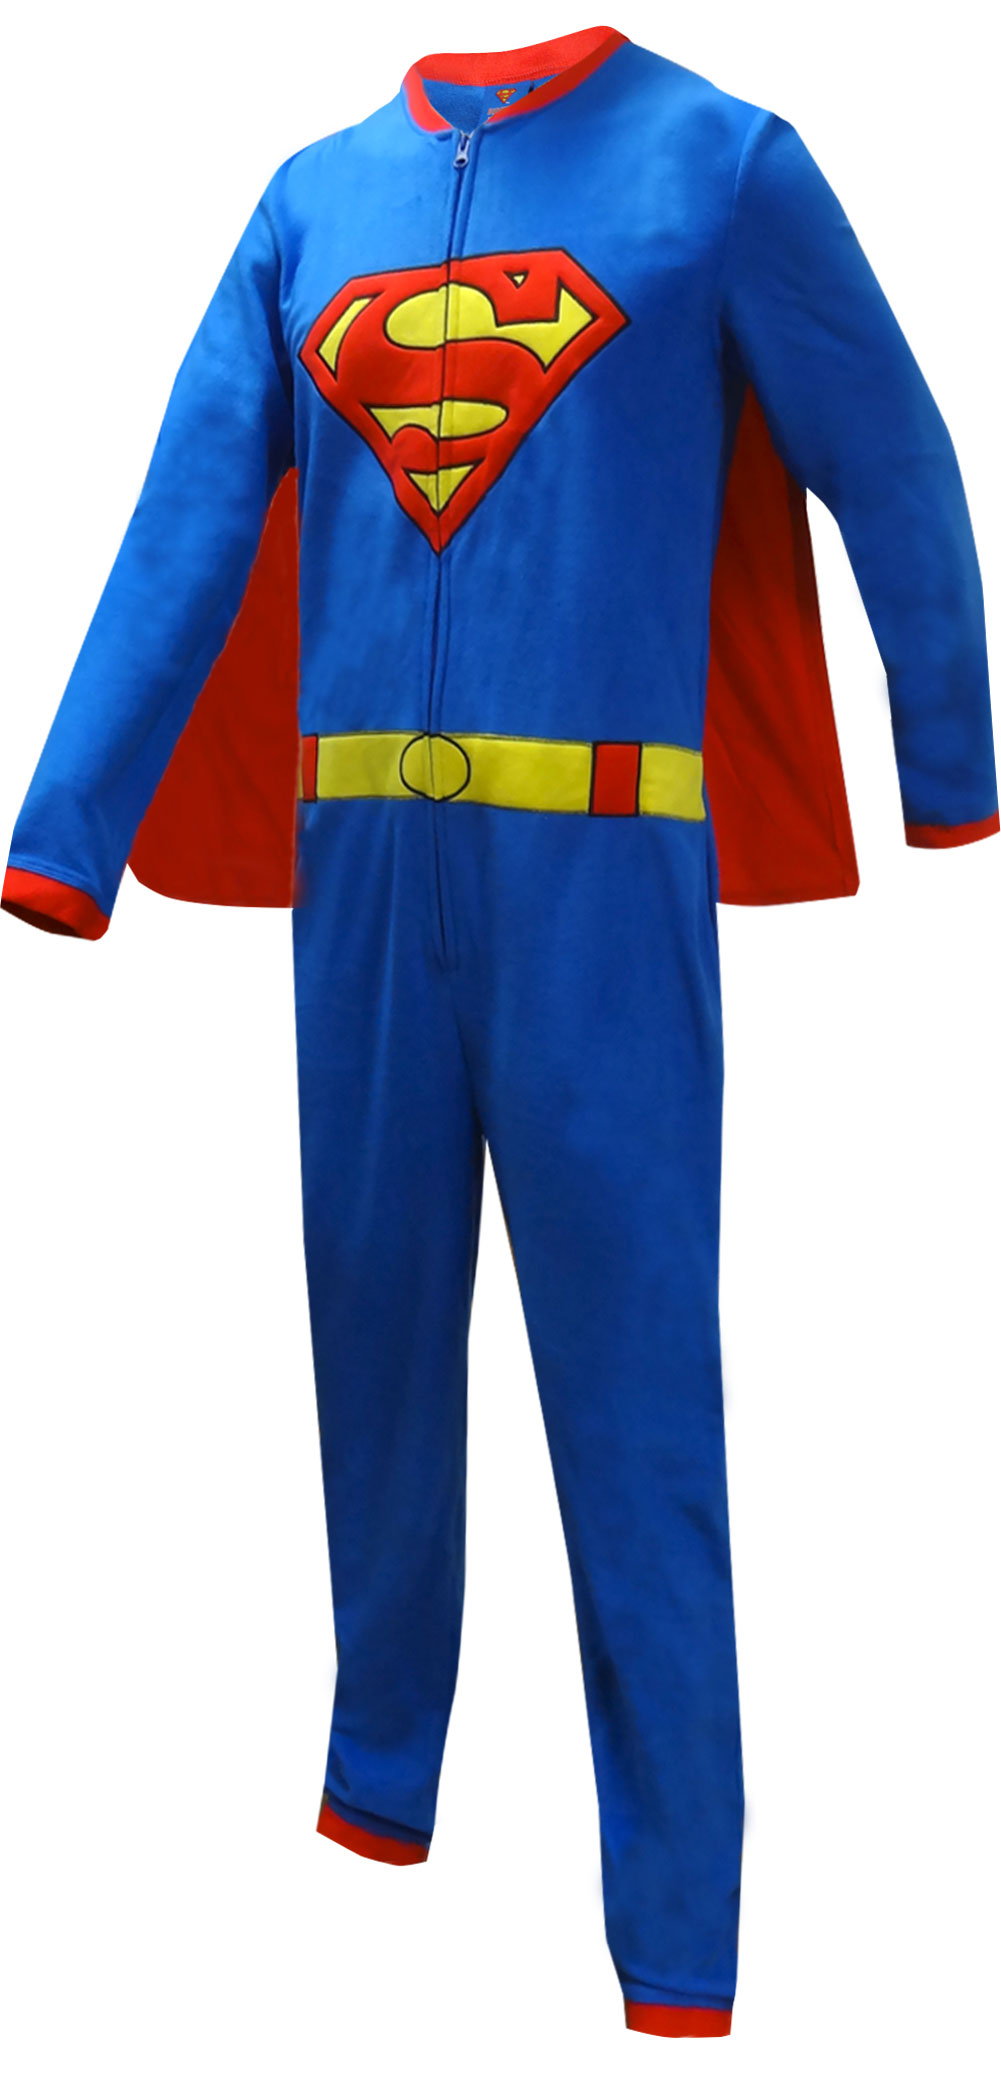 Superman Pajamas for Boys with Cape These Superman pajamas for boys feature a cape and are made specifically for sleep time fun and safety. The Superman pjs sold at desire-date.tk are made from one of two materials; they are either % polyester or % cotton.